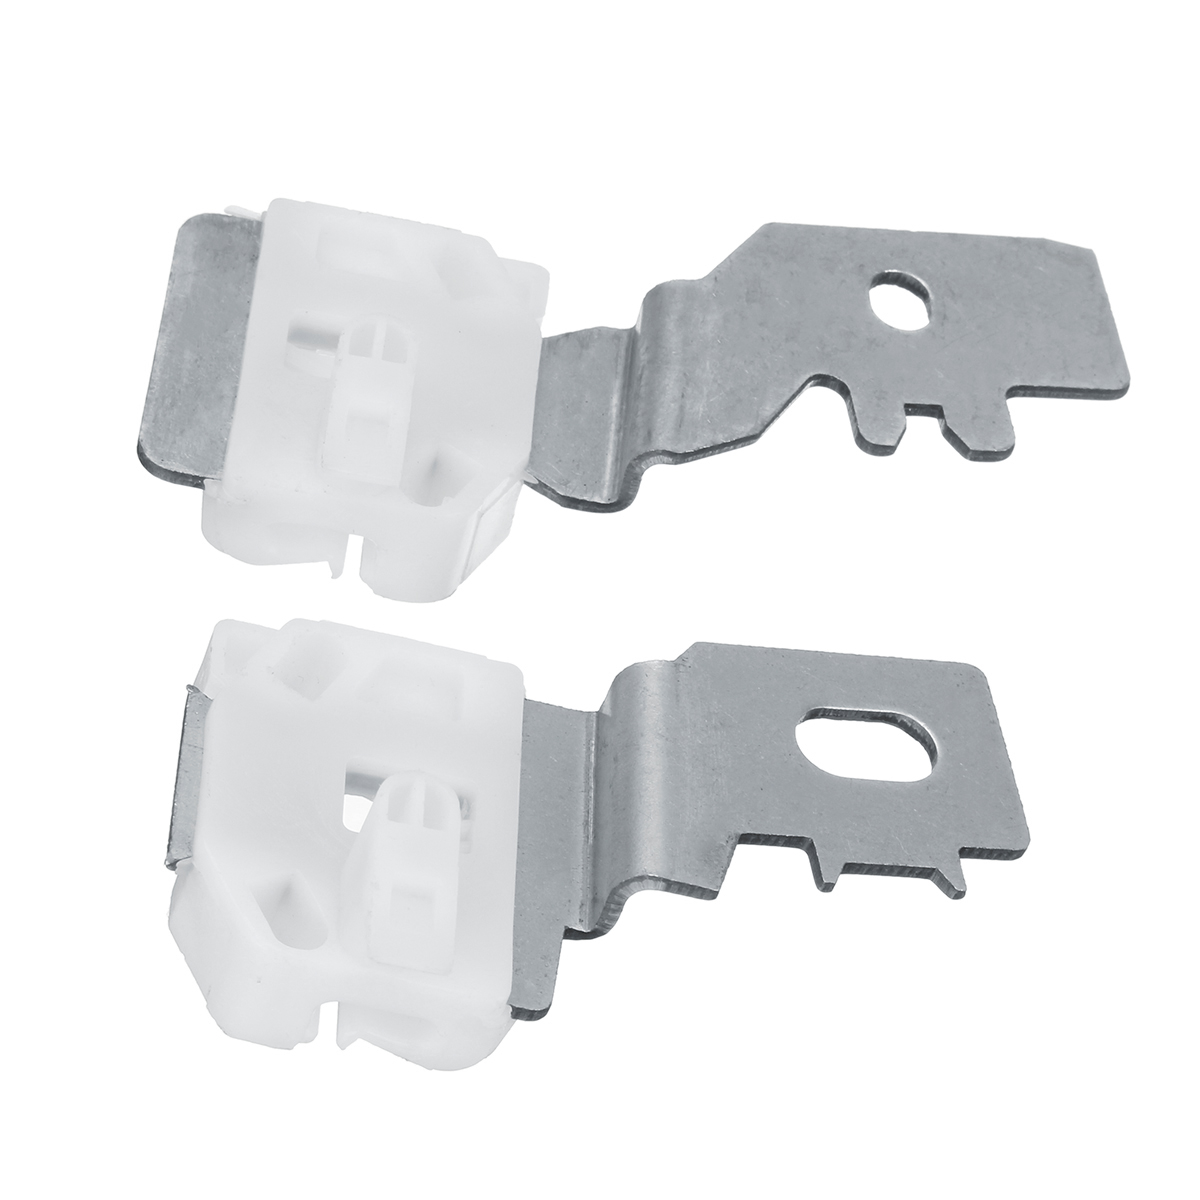 2pcs Window Regulator Repair Clips NS115LAB For NISSAN PRIMERA P12 2002-2007 Front Left